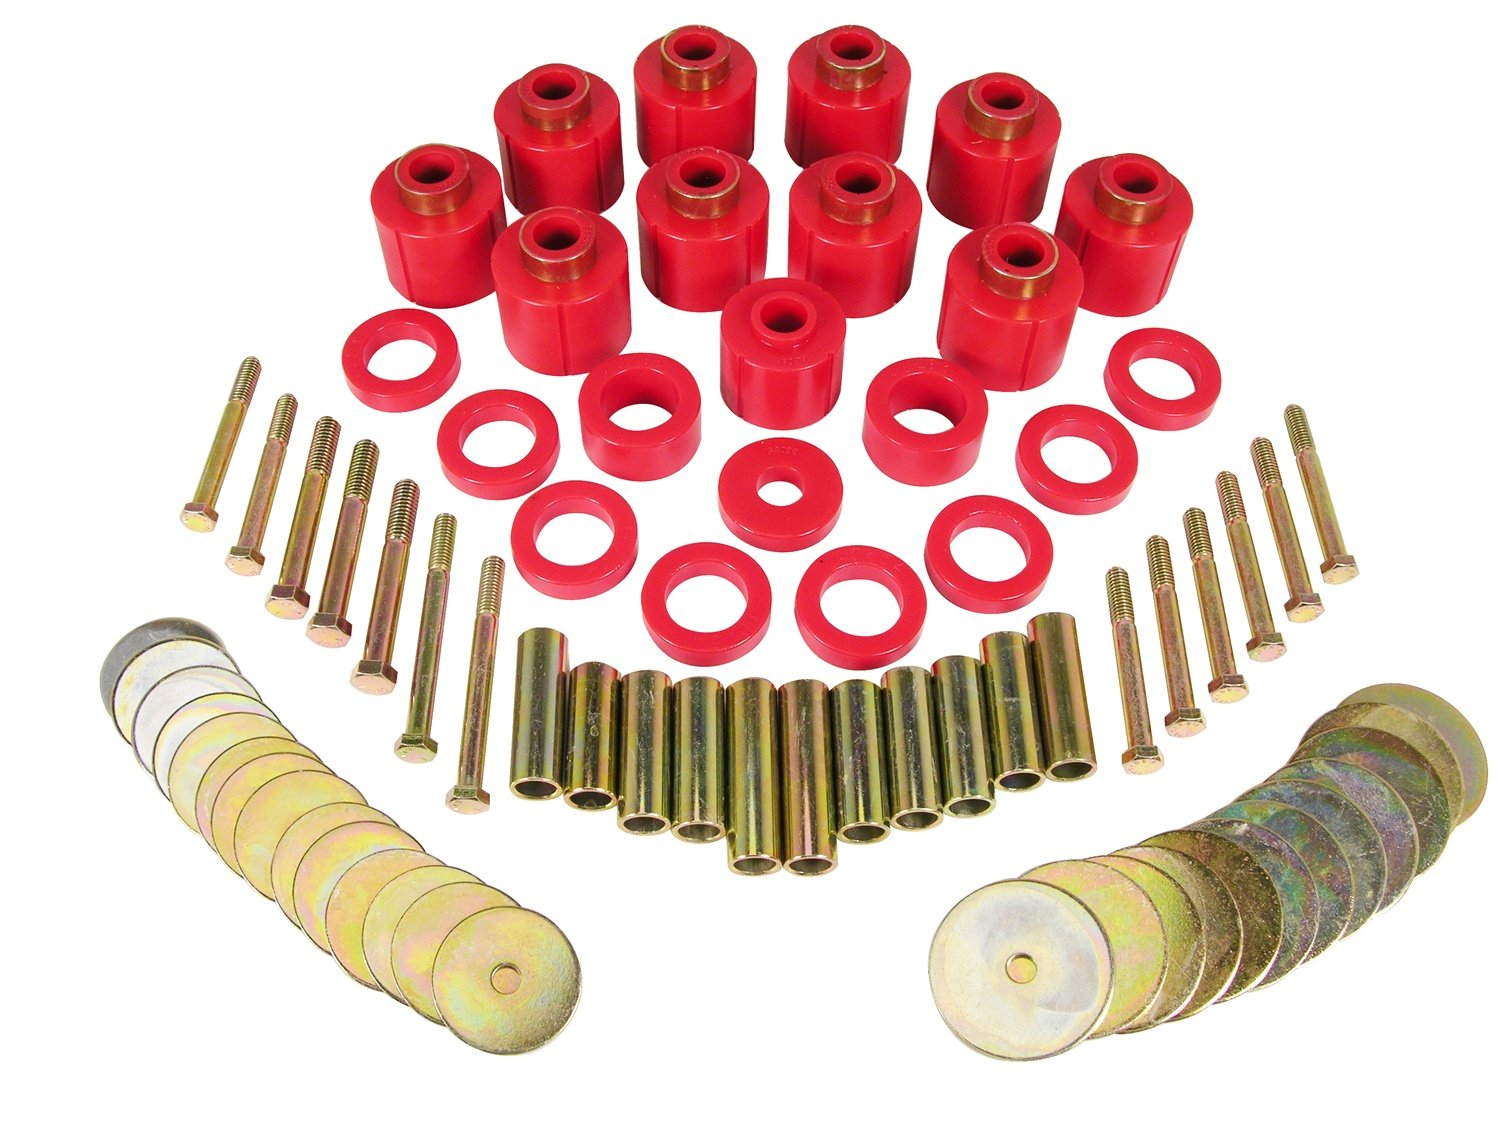 Prothane 1-111 Red 1' Lift Body Mount for CJ5 and CJ7